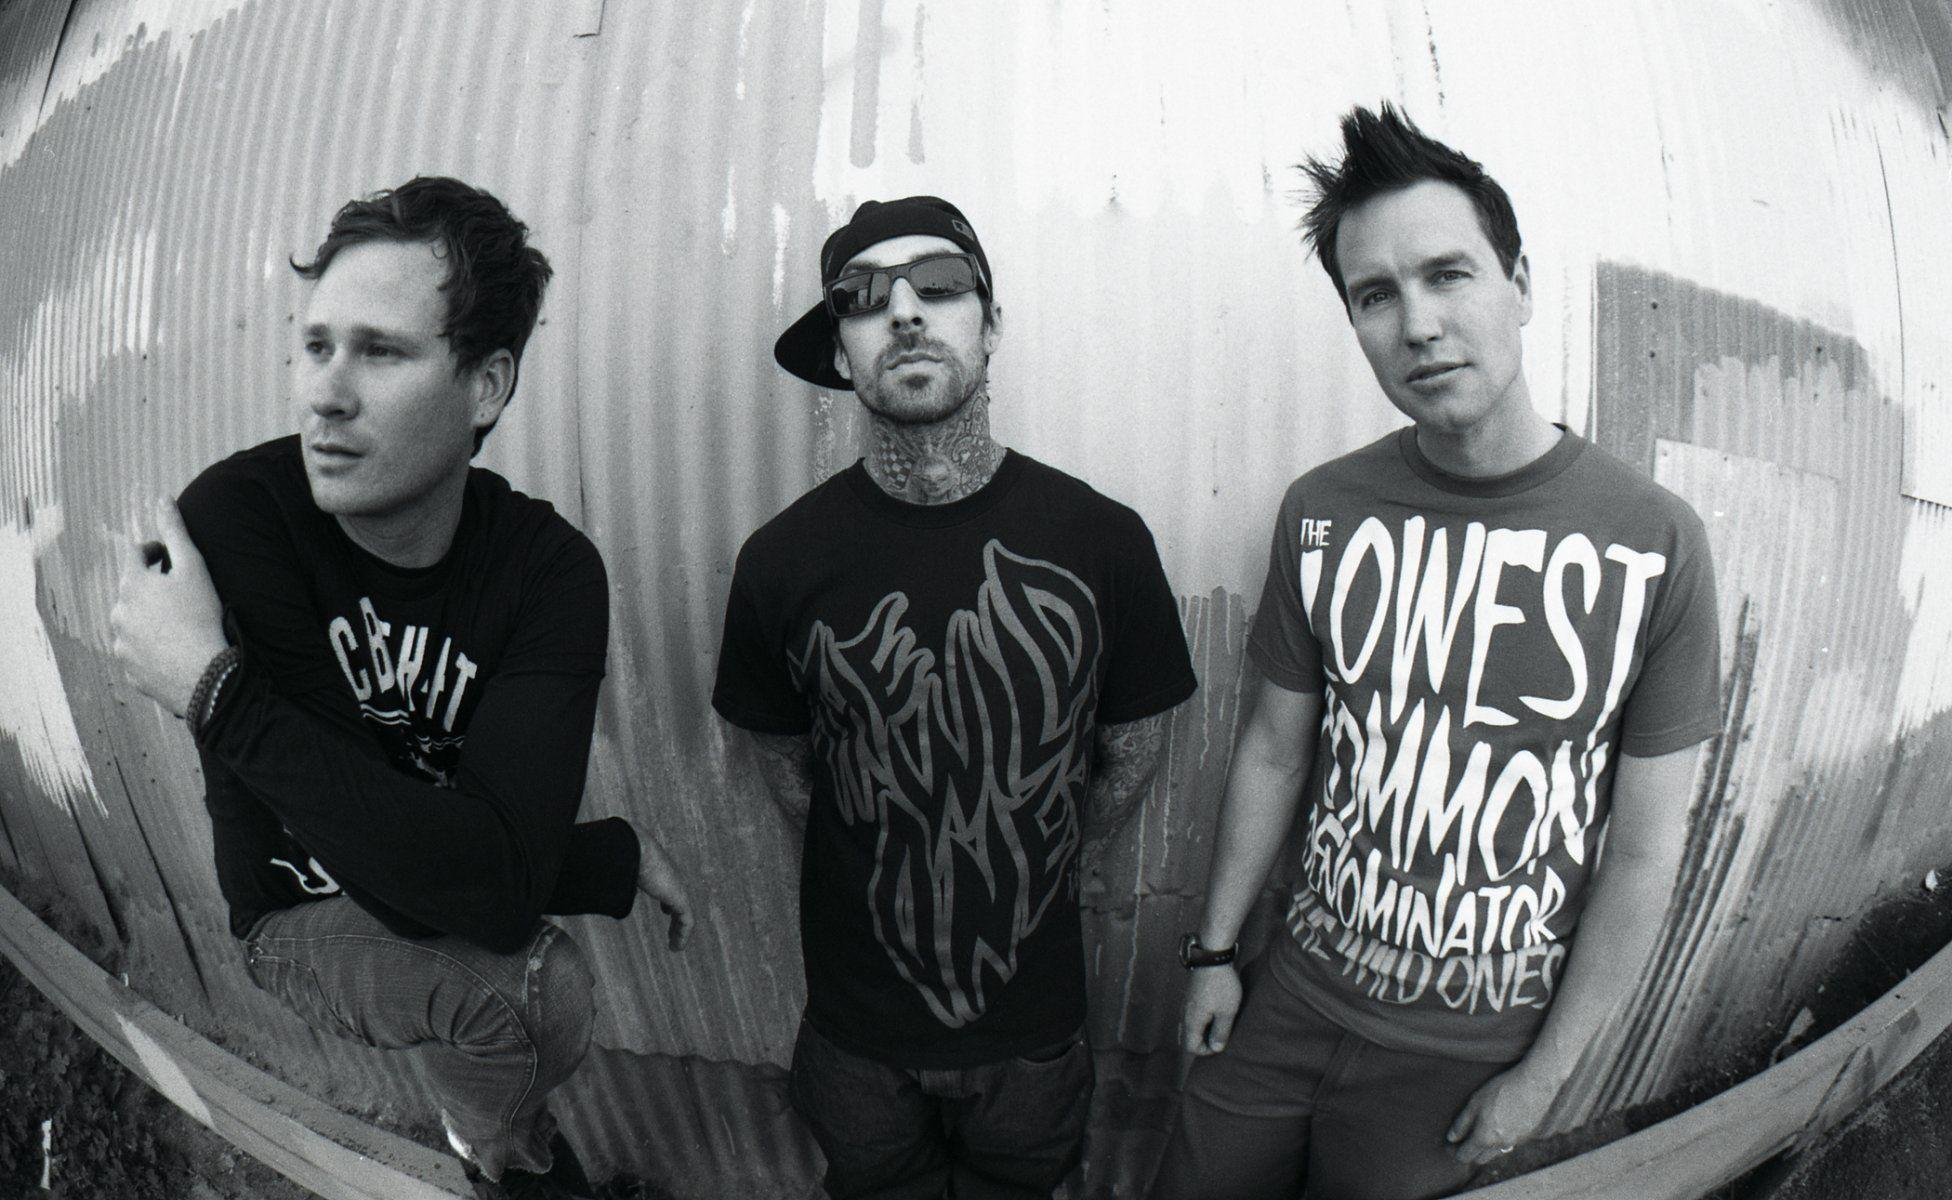 blink punk rock thomas delonge is delong mark hoppus mark hoppus ...